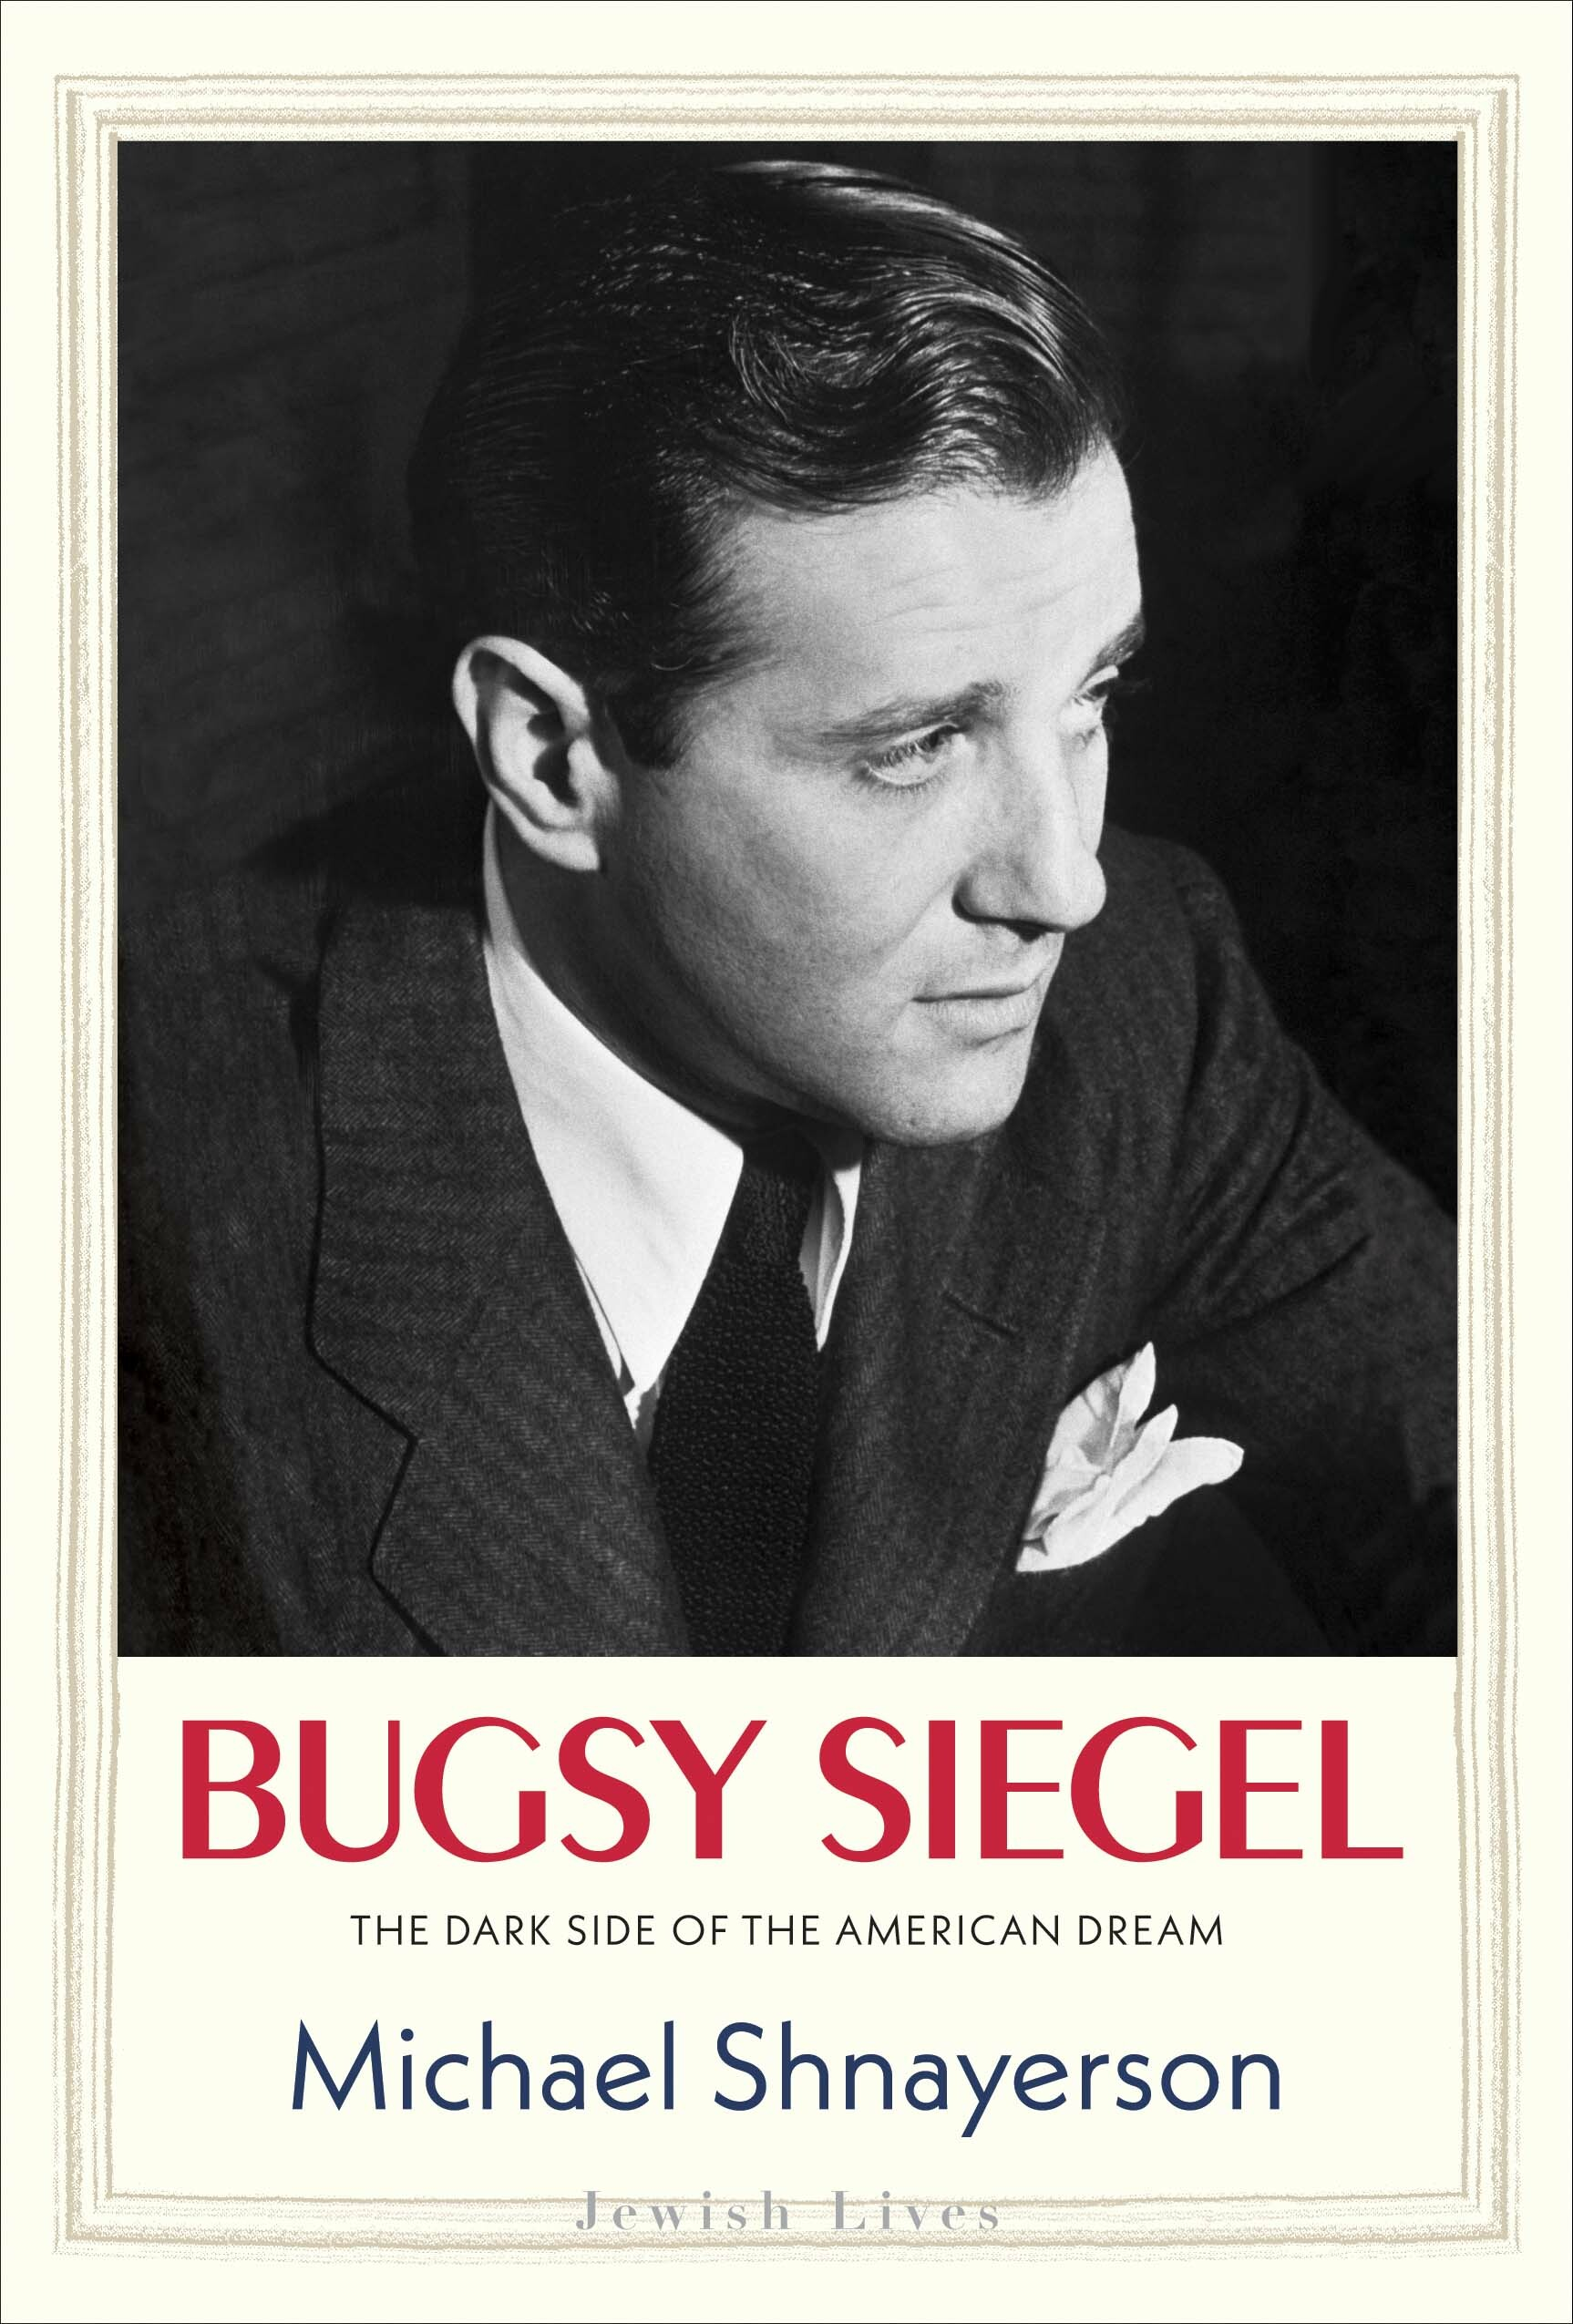 """Michael Shnayerson's biography, """"Bugsy Siegel: The Dark Side of the American Dream."""""""